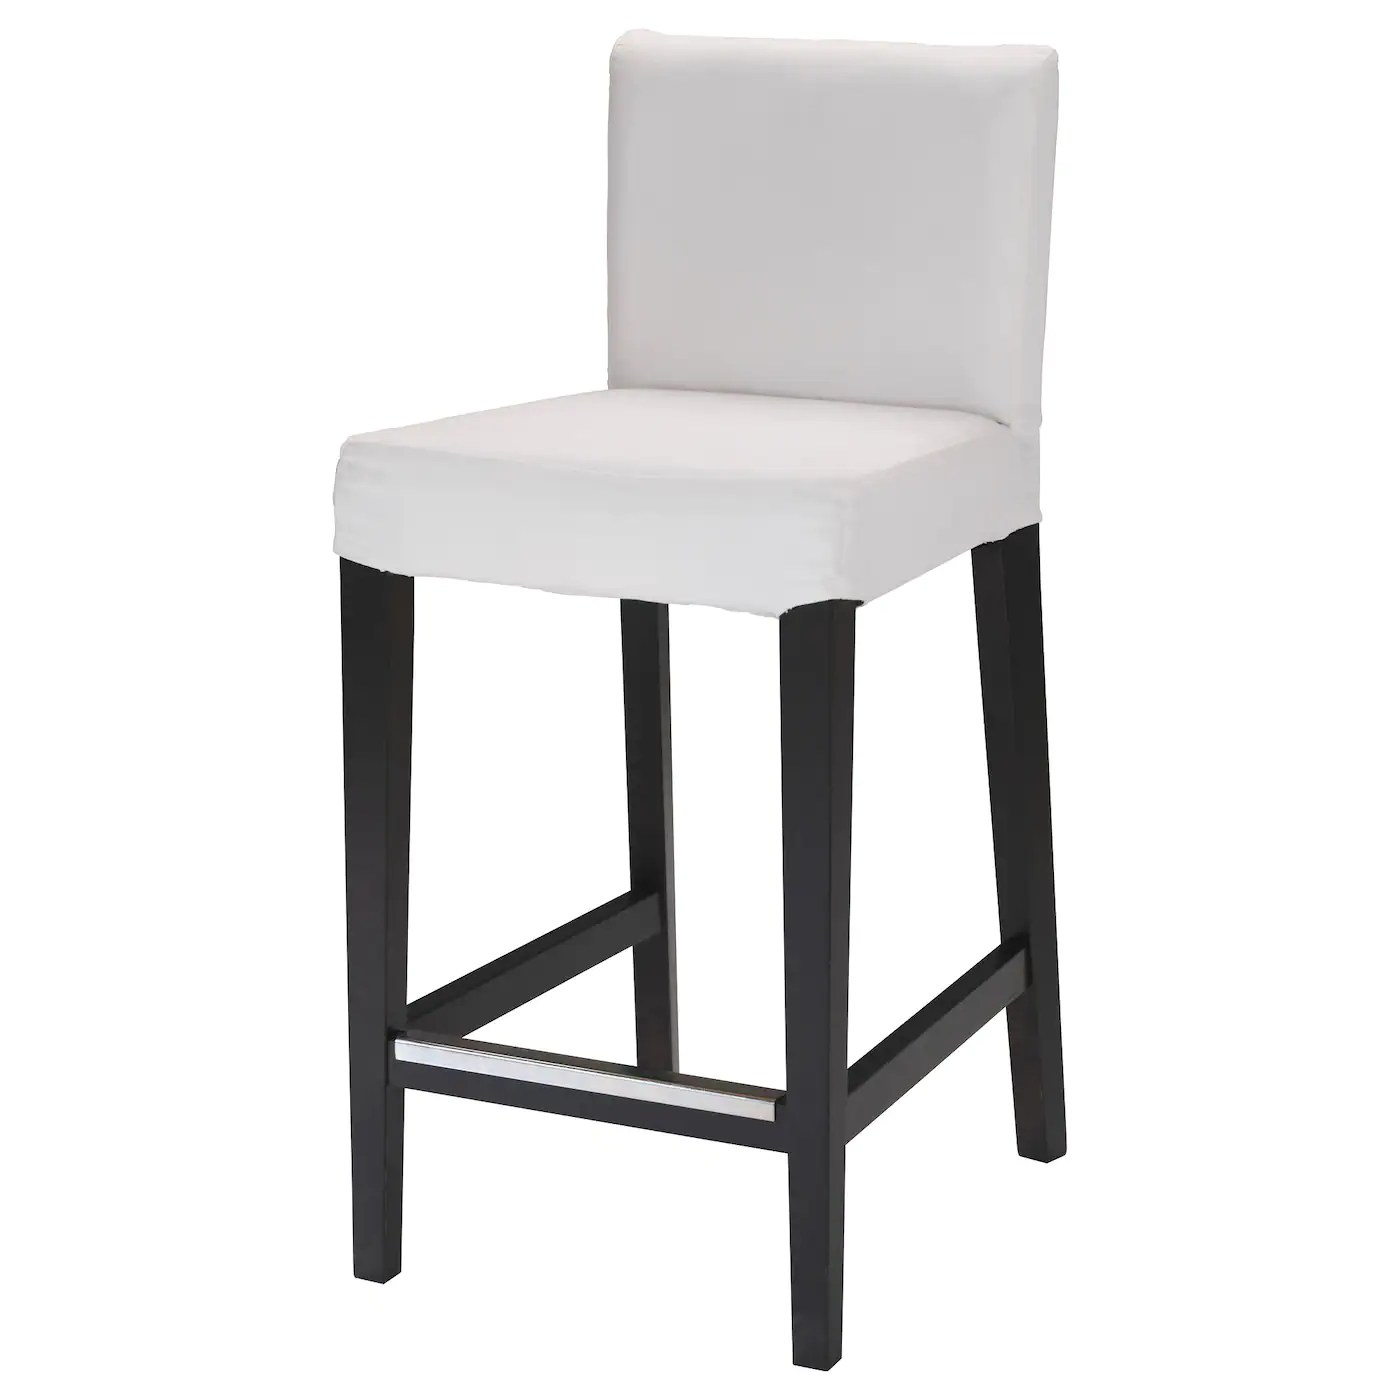 nice chair stool cost plus folding chairs bar stools ikea henriksdal with backrest frame the padded seat means you sit comfortably